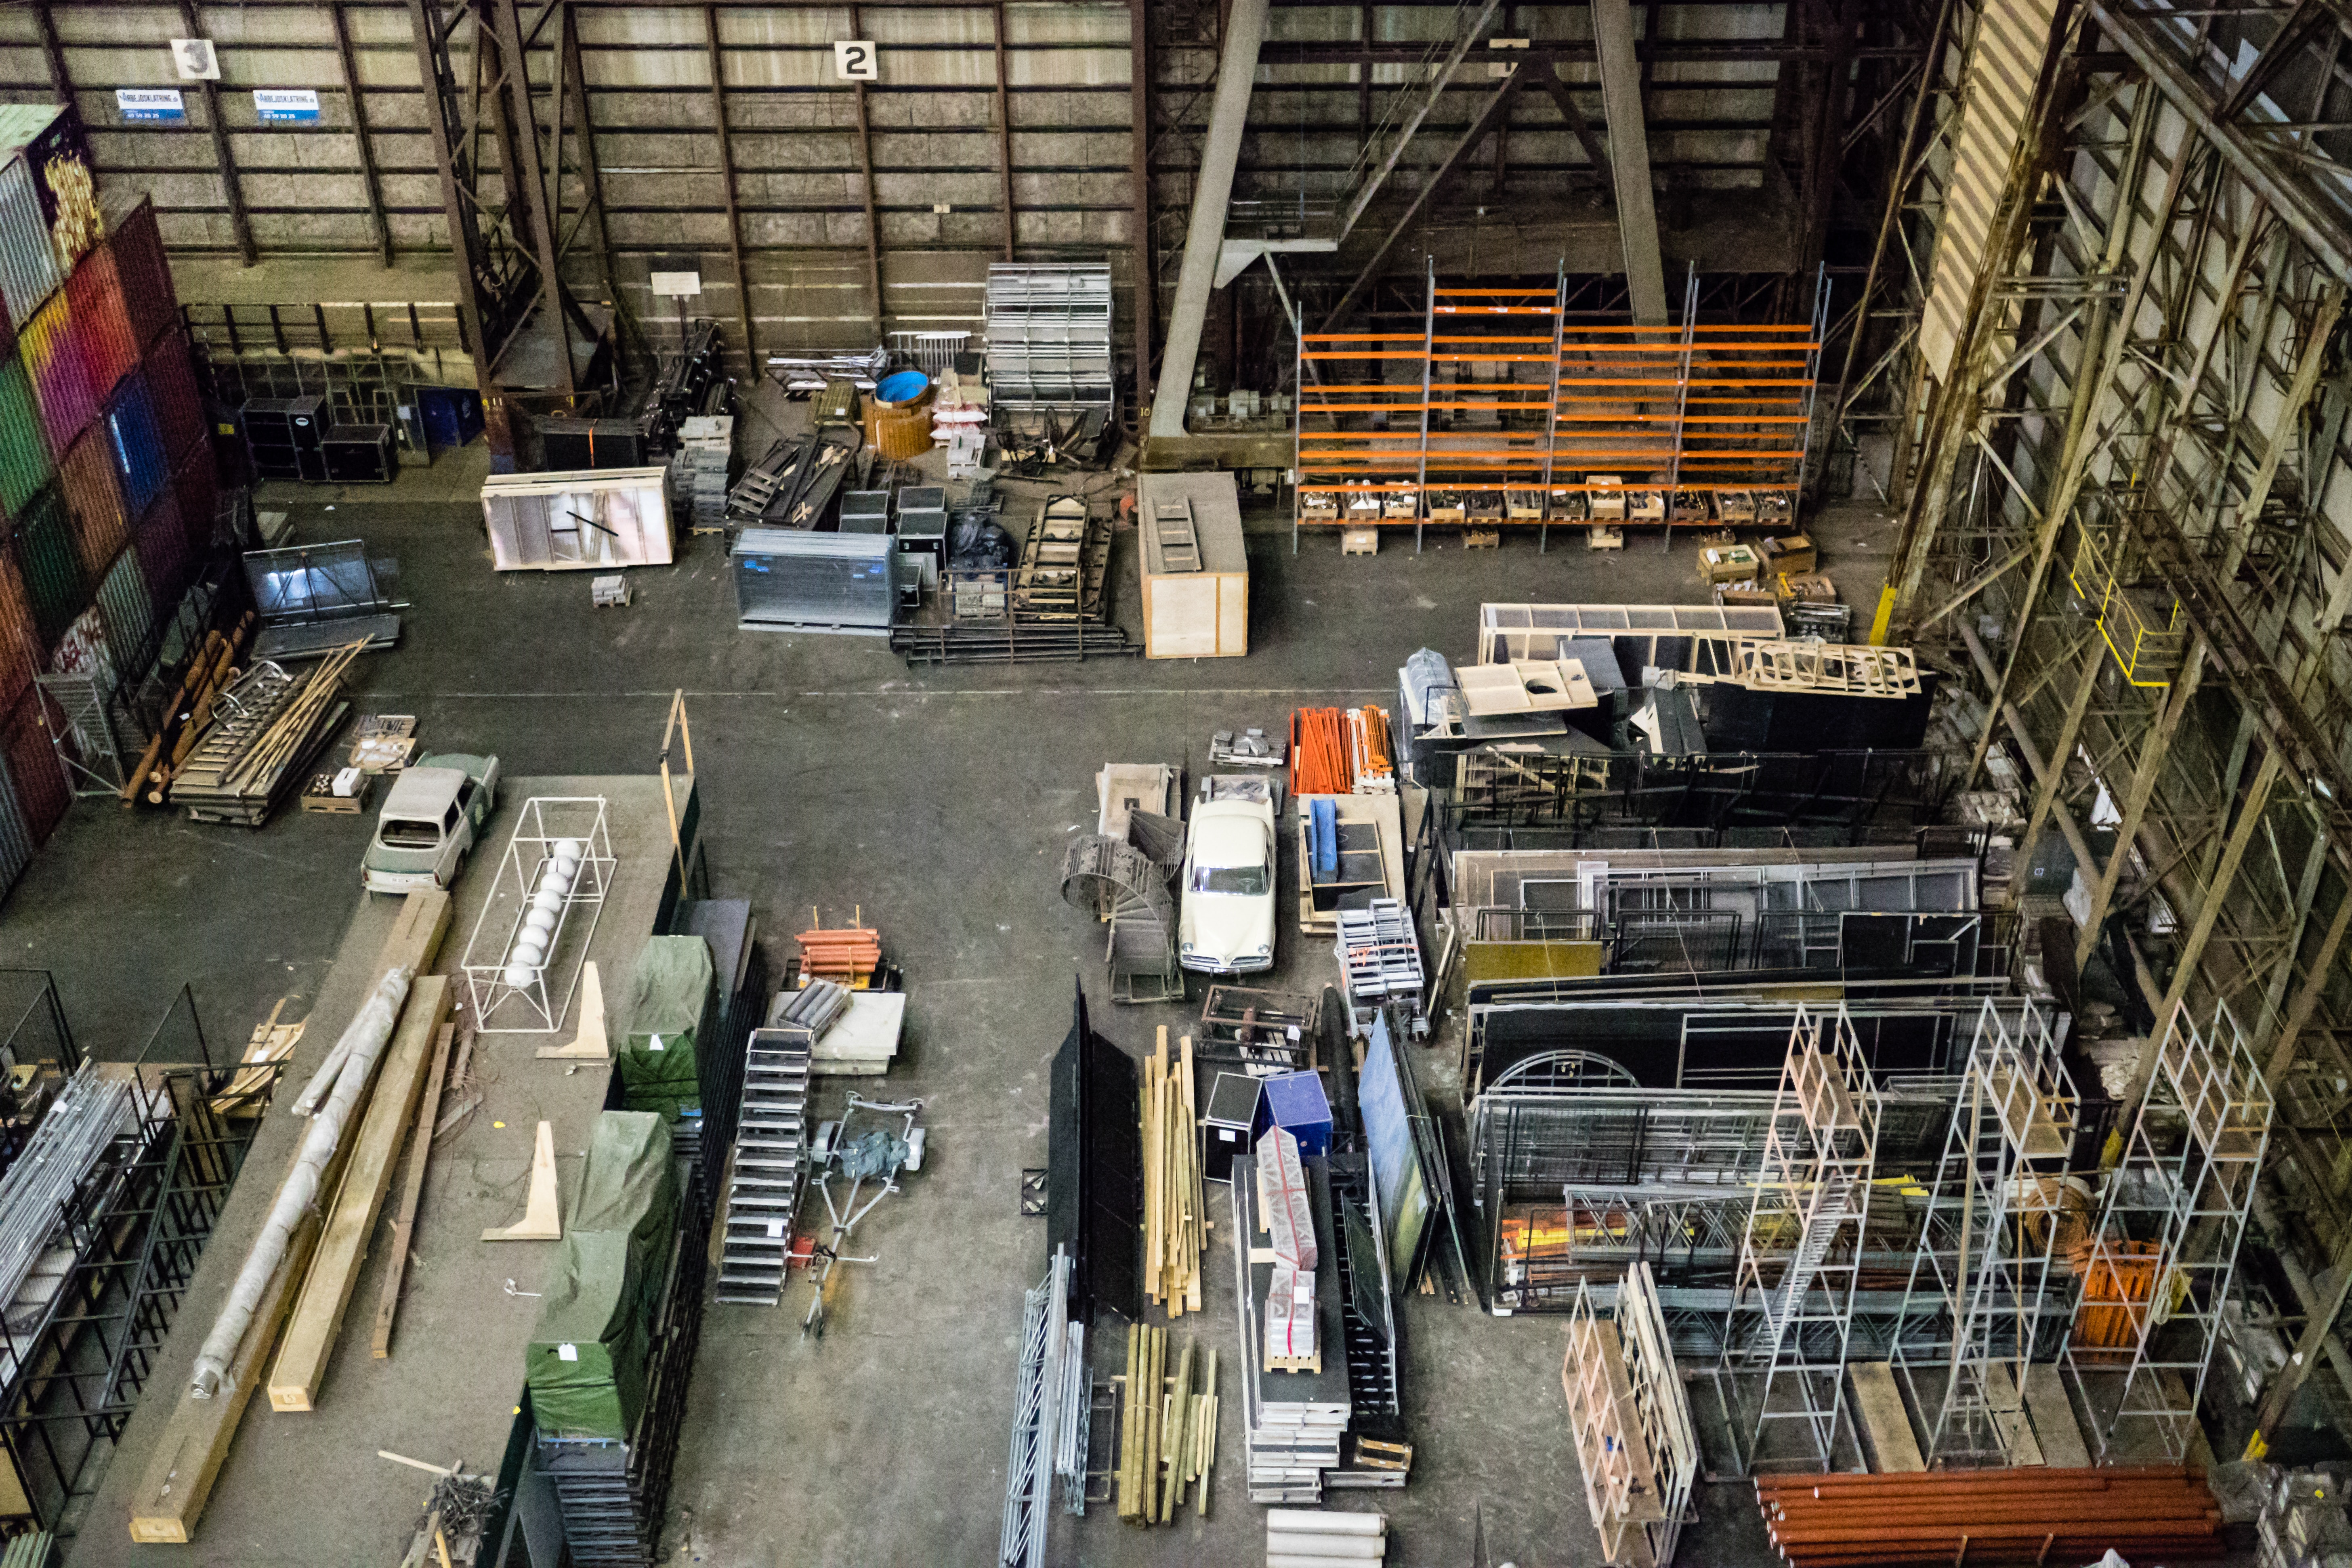 Manufacturing Plant Floor with objects scattered around the room